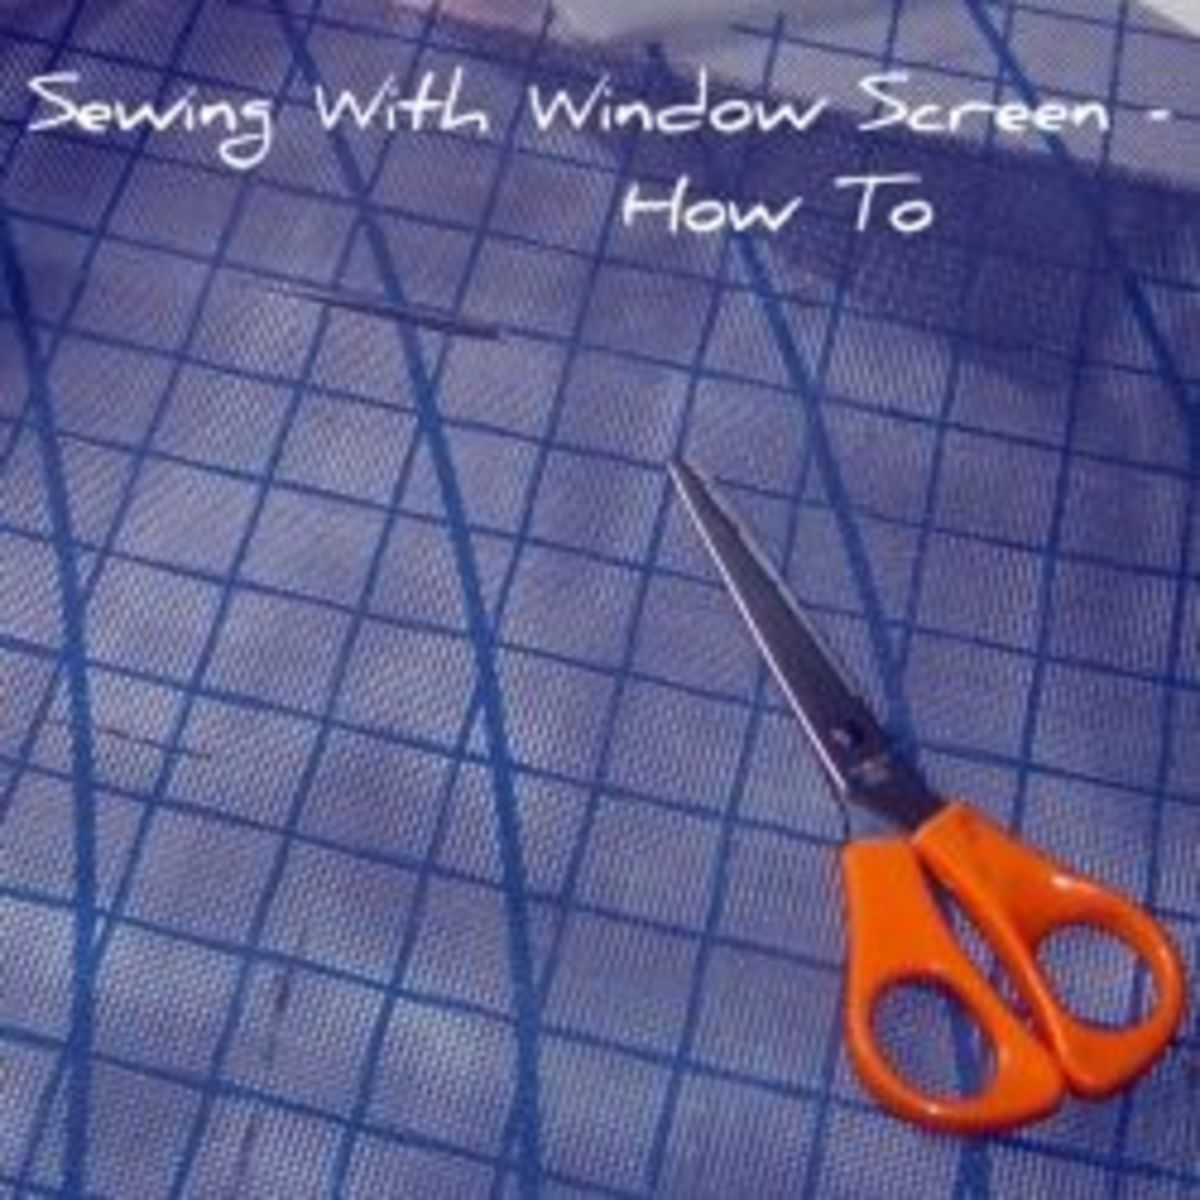 sewing-with-window-screen-how-to